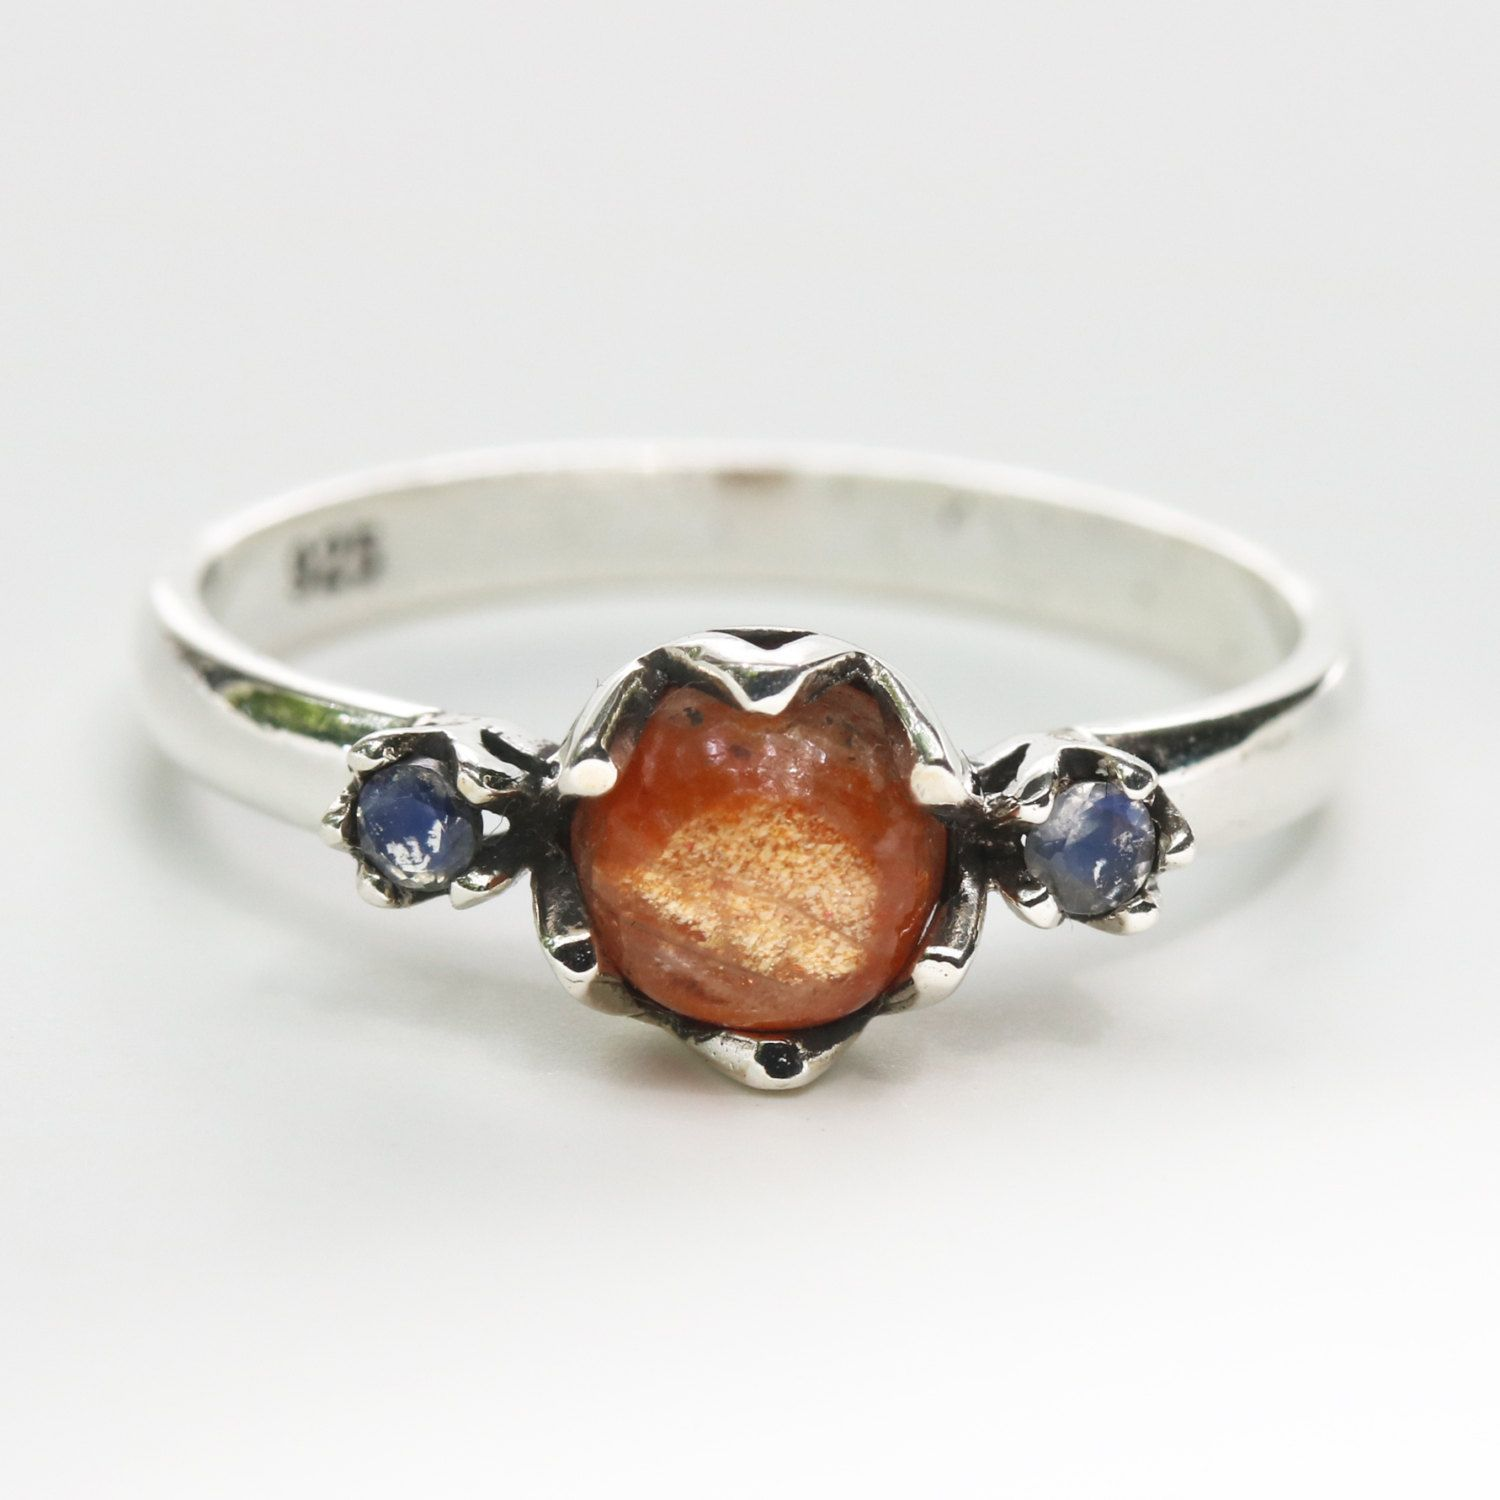 oregon silver in ring sterling inspired portland rings luxury engagement sunstone stone il fullxfull sun vintage wedding